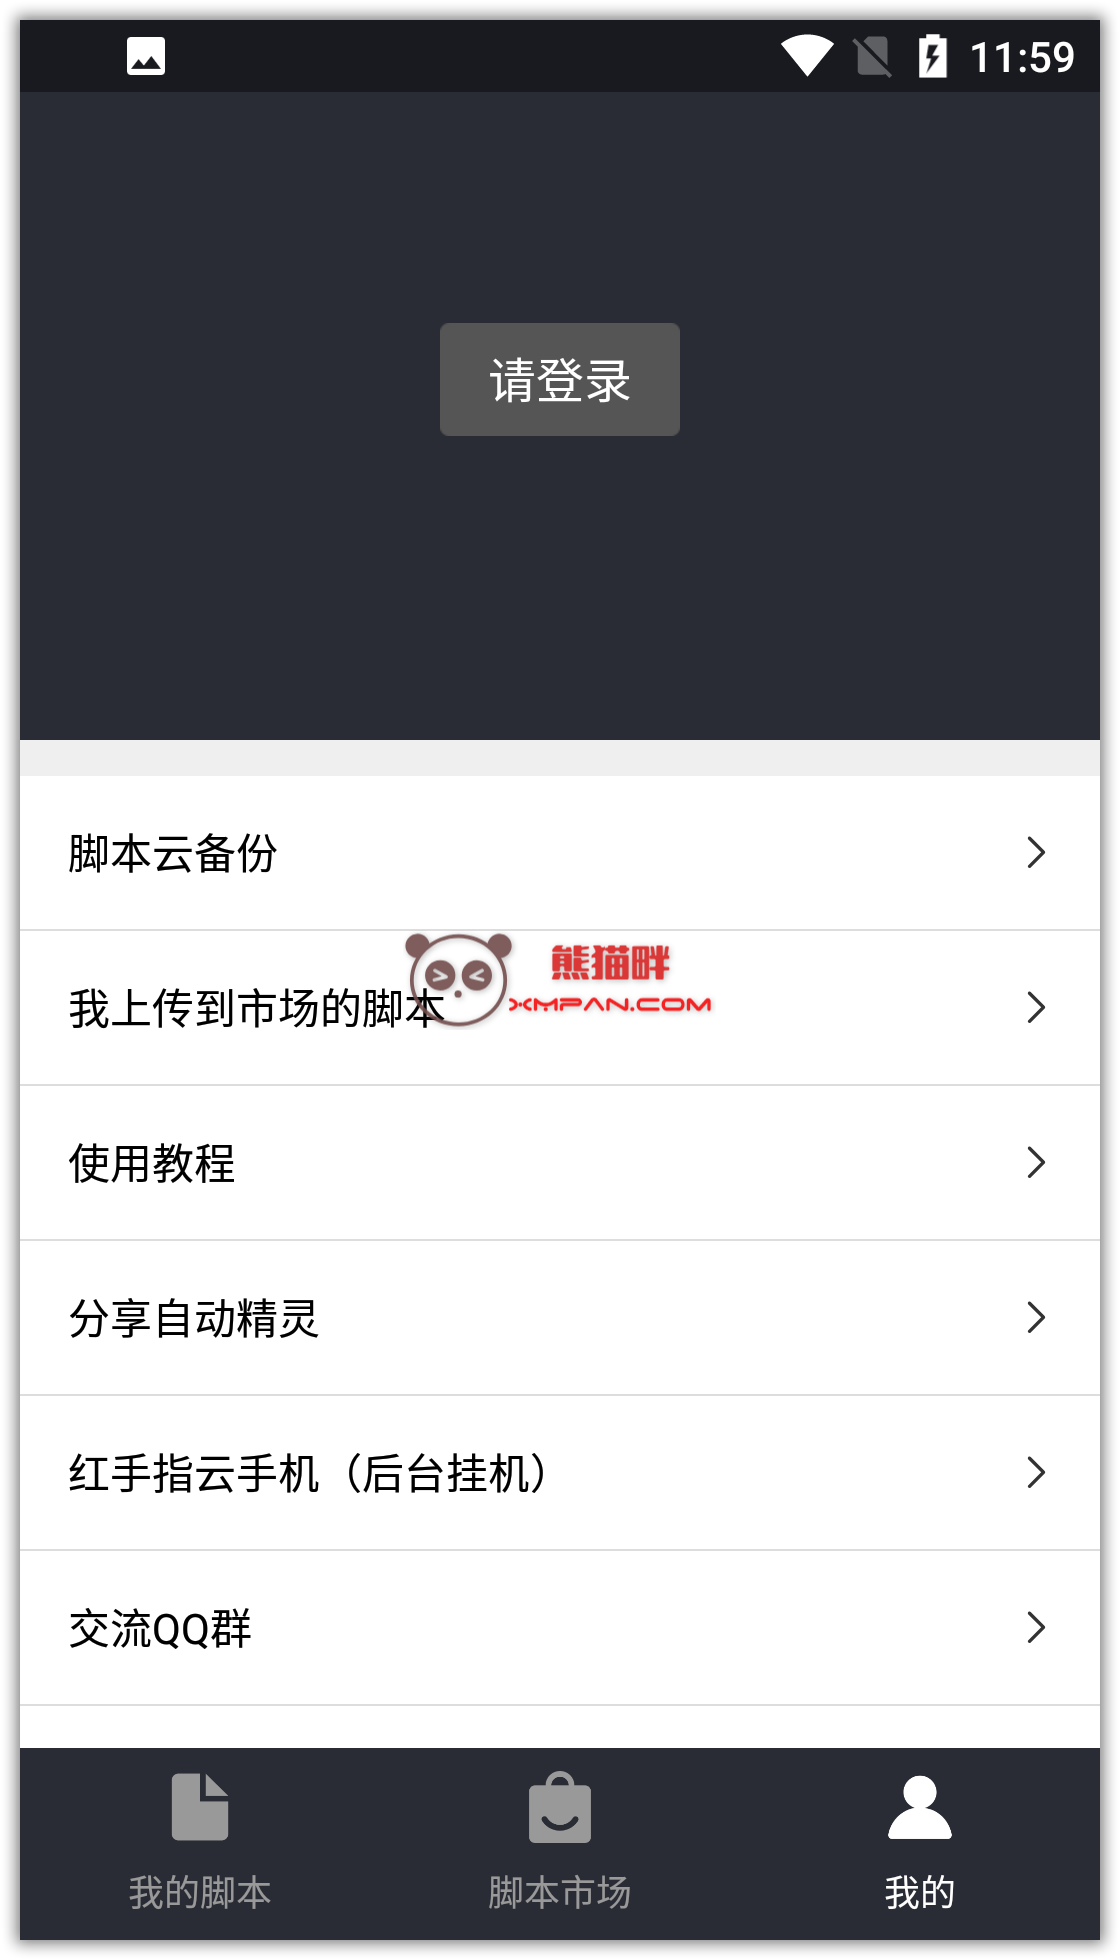 Android 自动精灵 V2.13.1 支持脚本录制免ROOT-树荣社区